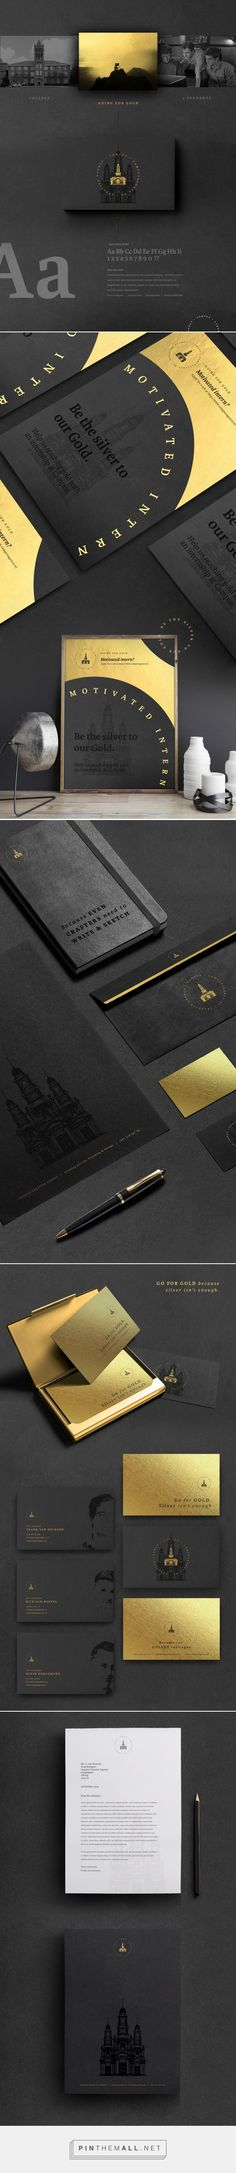 Campus Branding by Frank Van Deursen  | Fivestar Branding Agency – Design and Branding Agency & Curated Inspiration Gallery